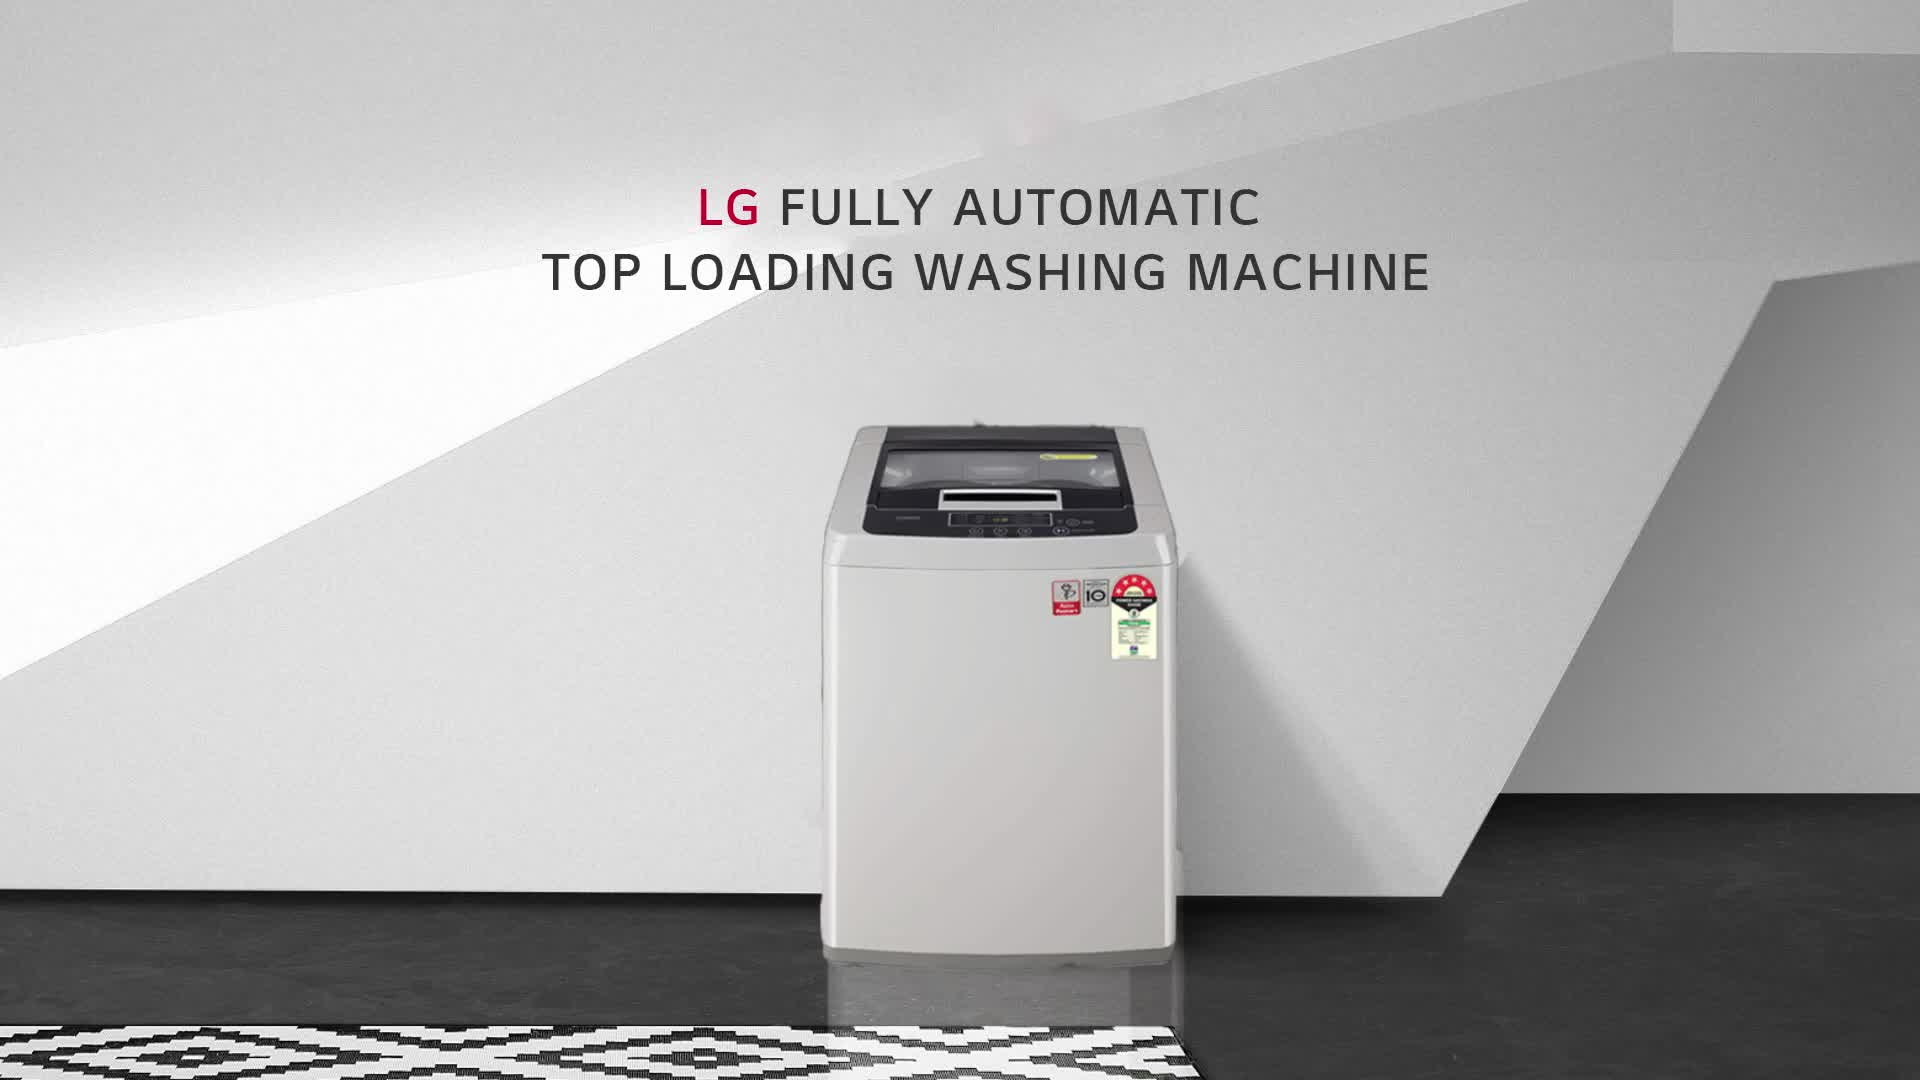 LG 6.5 Kg 5 Star Smart Inverter Fully-Automatic Top Loading Washing Machine (T65SKSF4Z, Middle Free Silver) 2021 June Fully-automatic top load washing machine: Affordable with great wash quality, Easy to use 5 Star Energy Rated Model : Best in class efficiency Capacity 6.5 Kg : Suitable for bachelors & couples